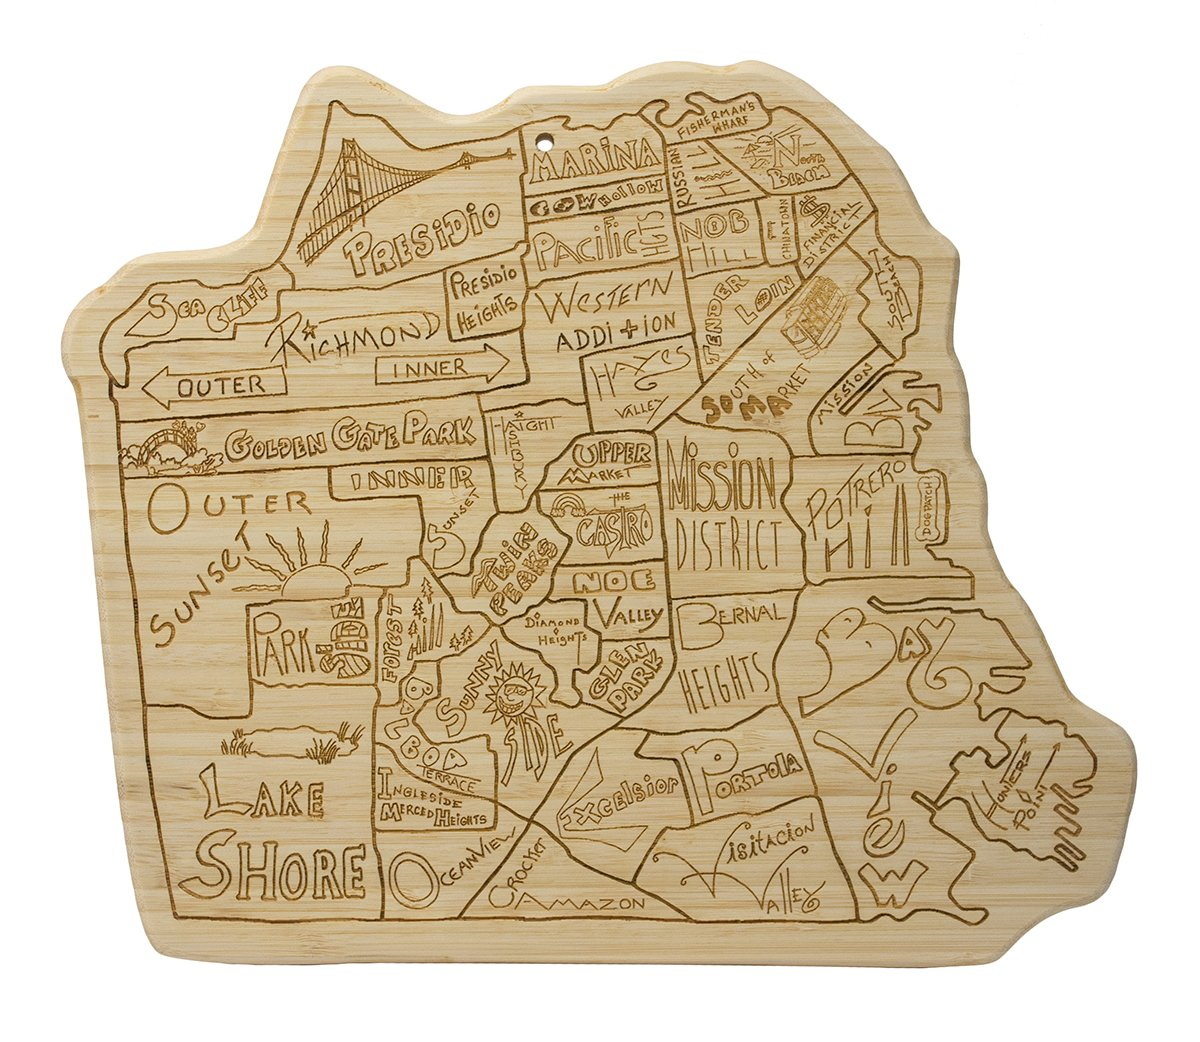 Amazon.com: Totally Bamboo City Life Serving Board, San Francisco ...